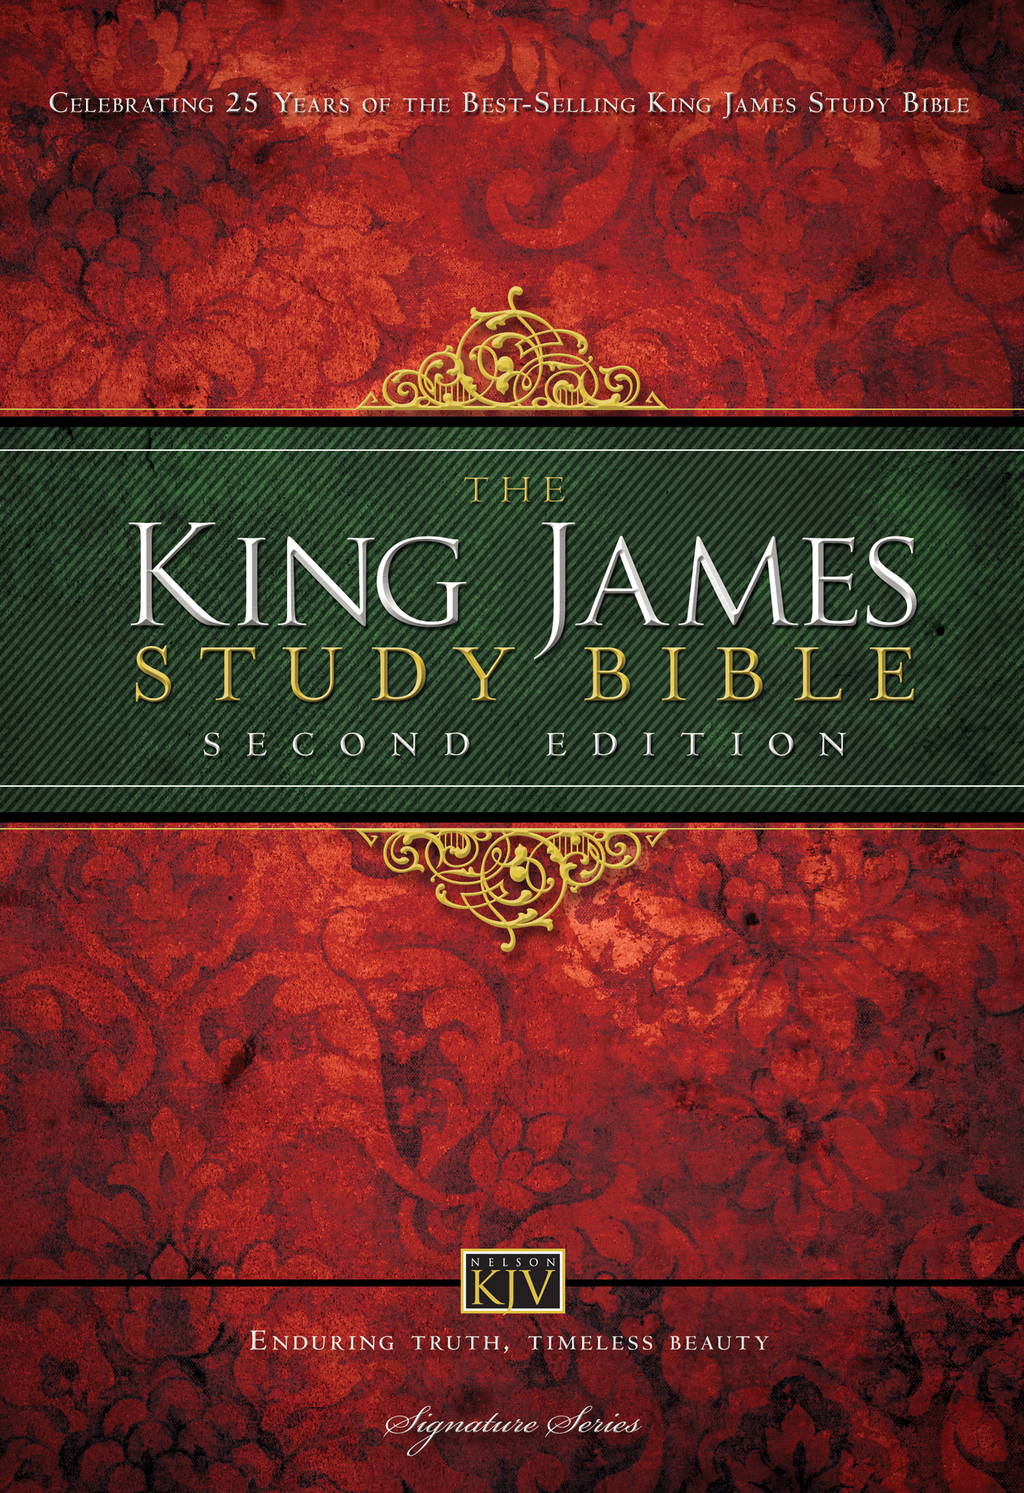 King James Study Bible Second Edition